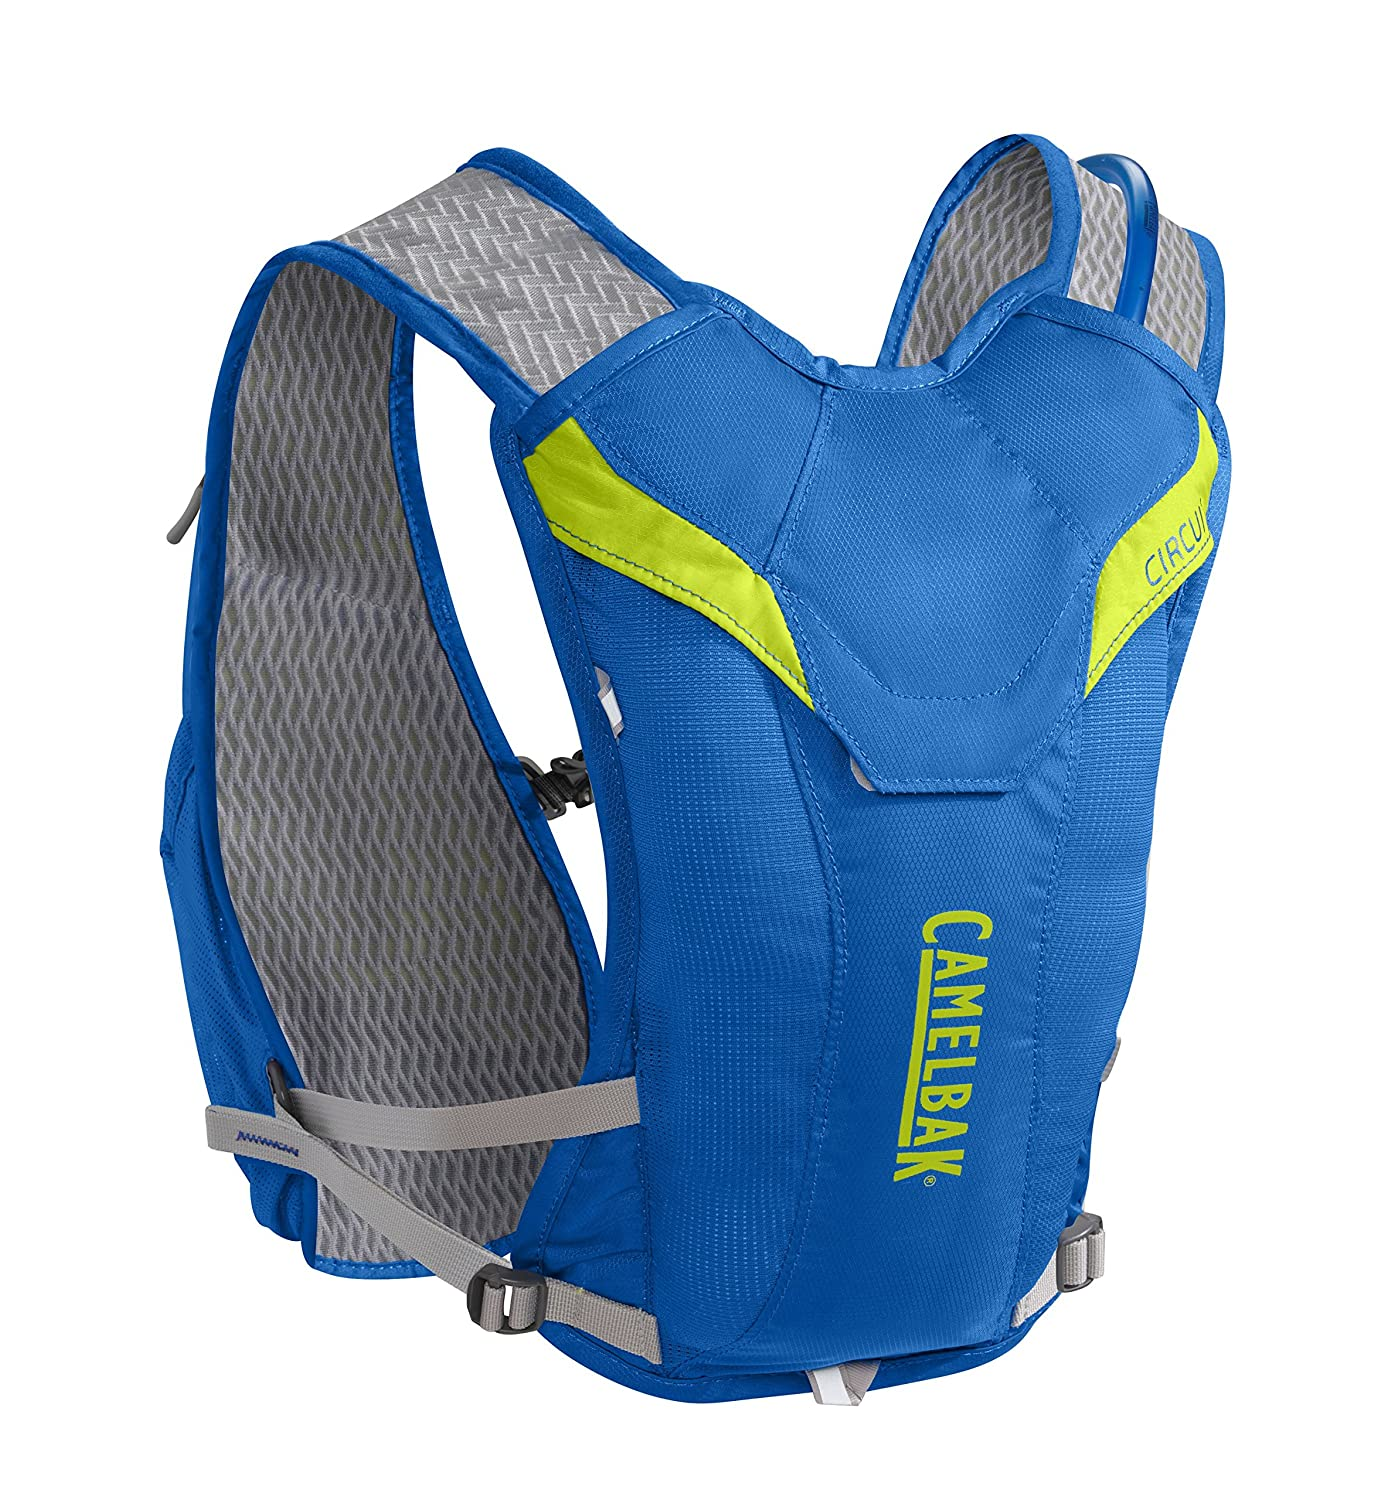 Camelbak 2016 Circuit Hydration Vest Electric Blue Ladder Logic Diagram For Bottle Filling System Lime Punch Sports Outdoors